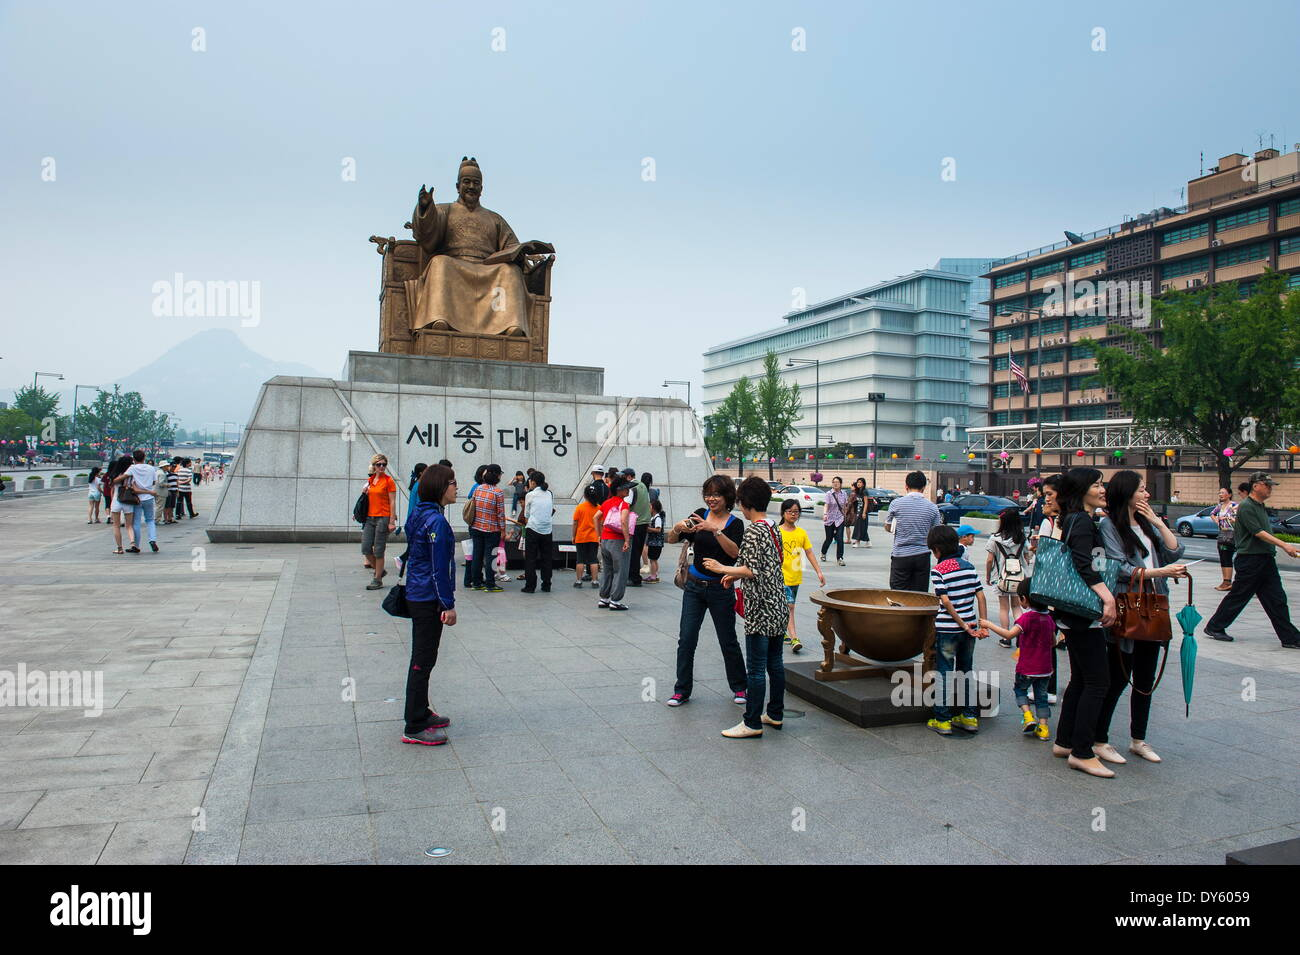 Admiral Yi sun-sin statue in the Gyeongbokgung palaca, Seoul, South Korea, Asia - Stock Image